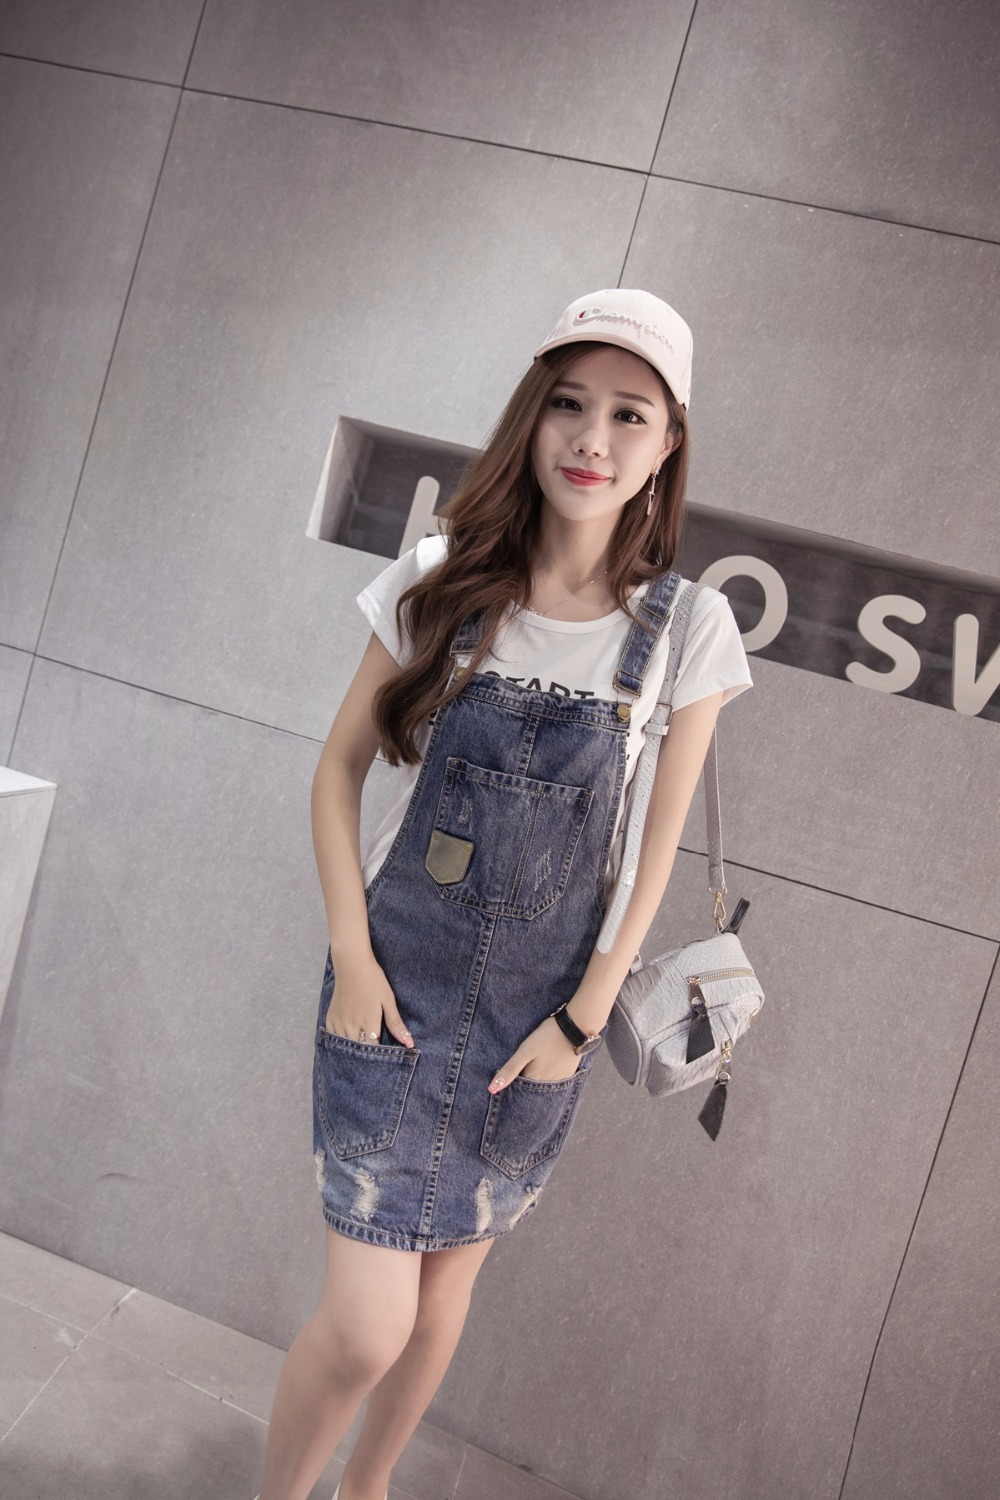 e1f91504e4ce Type Playsuits Decoration Pockets Brand Name Ojssuzen Material Cotton  Pattern Type Solid Model Number 12303. Fabric Type Denim Style Casual